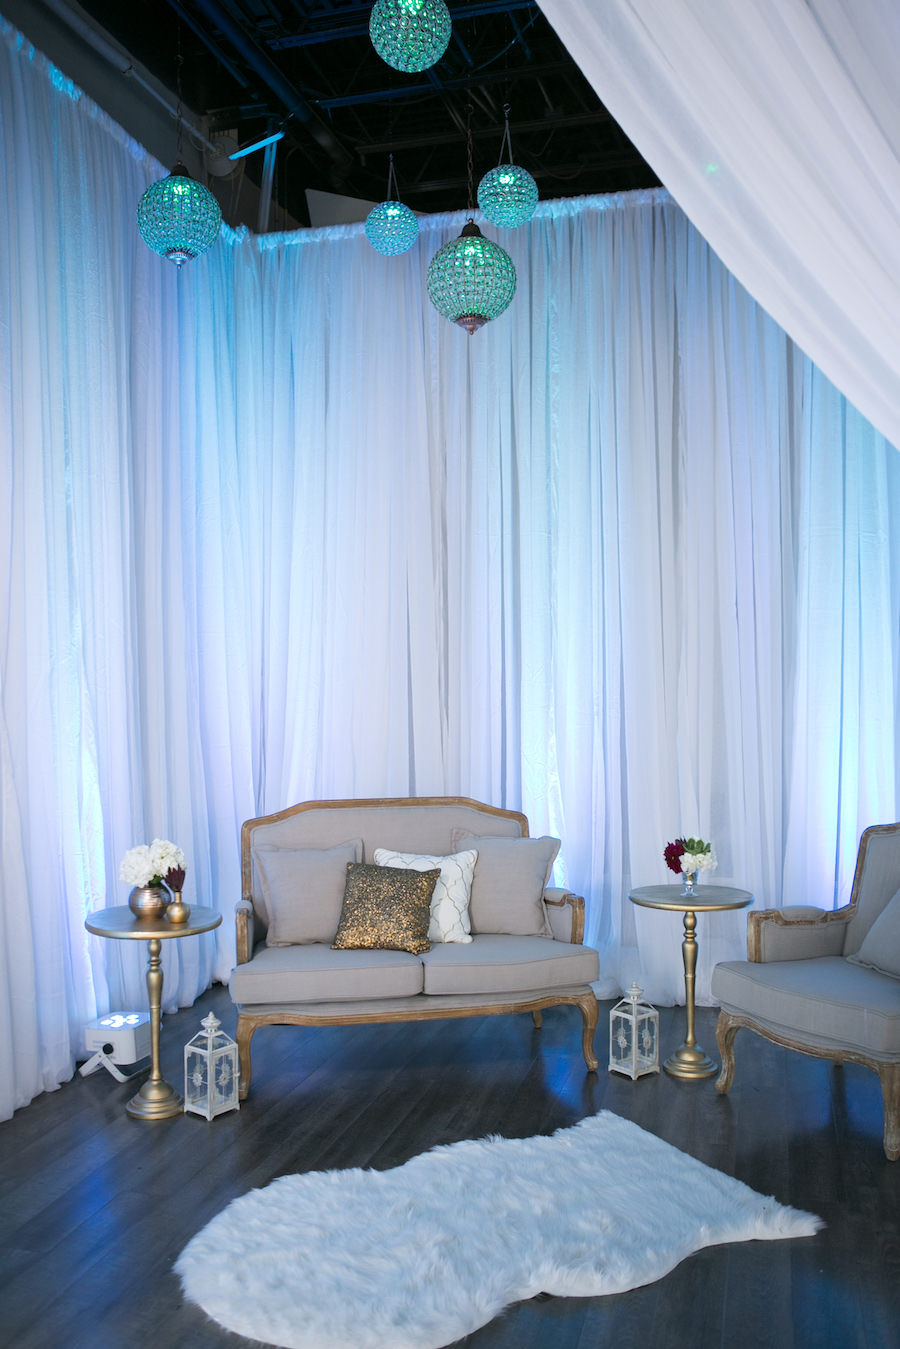 Vintage Gold Couch and Upholstered Furniture with White Draping | Modern Wedding Reception Decor Ideas and Inspiration